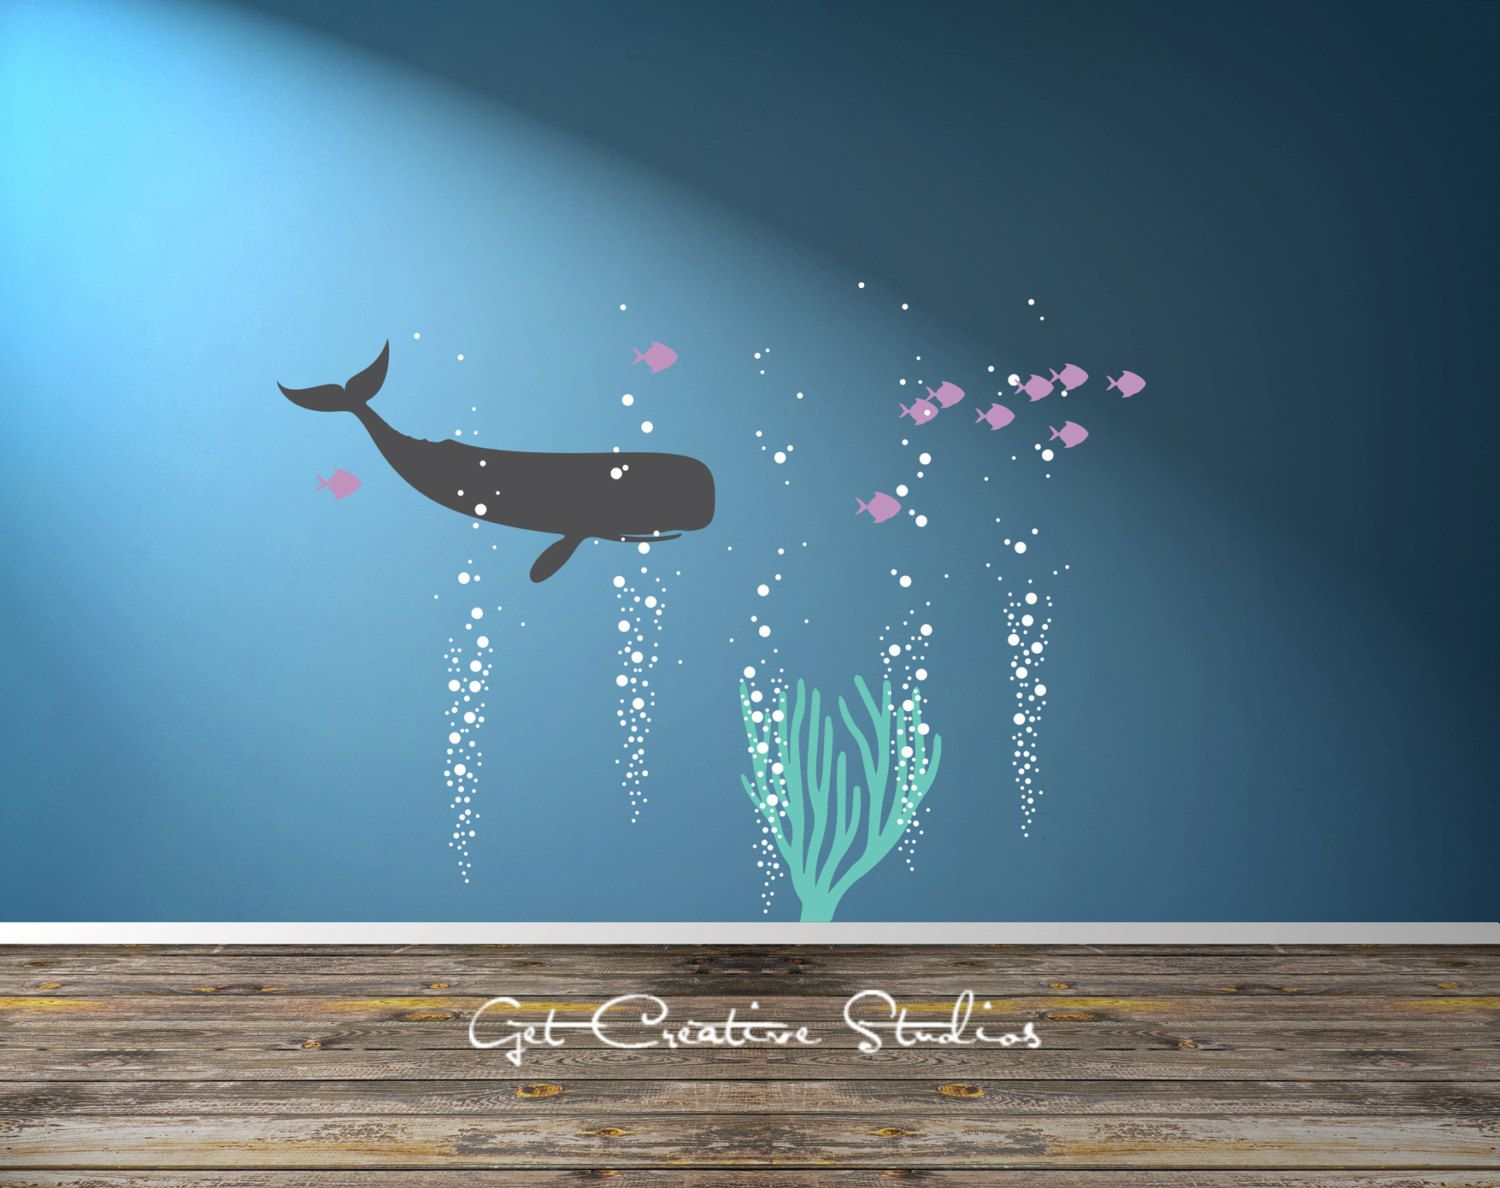 aquarium bubbles decal school of fish decal ocean scene wall art aquarium bubbles decal school of fish decal ocean scene wall art underwater wall decal nautical theme